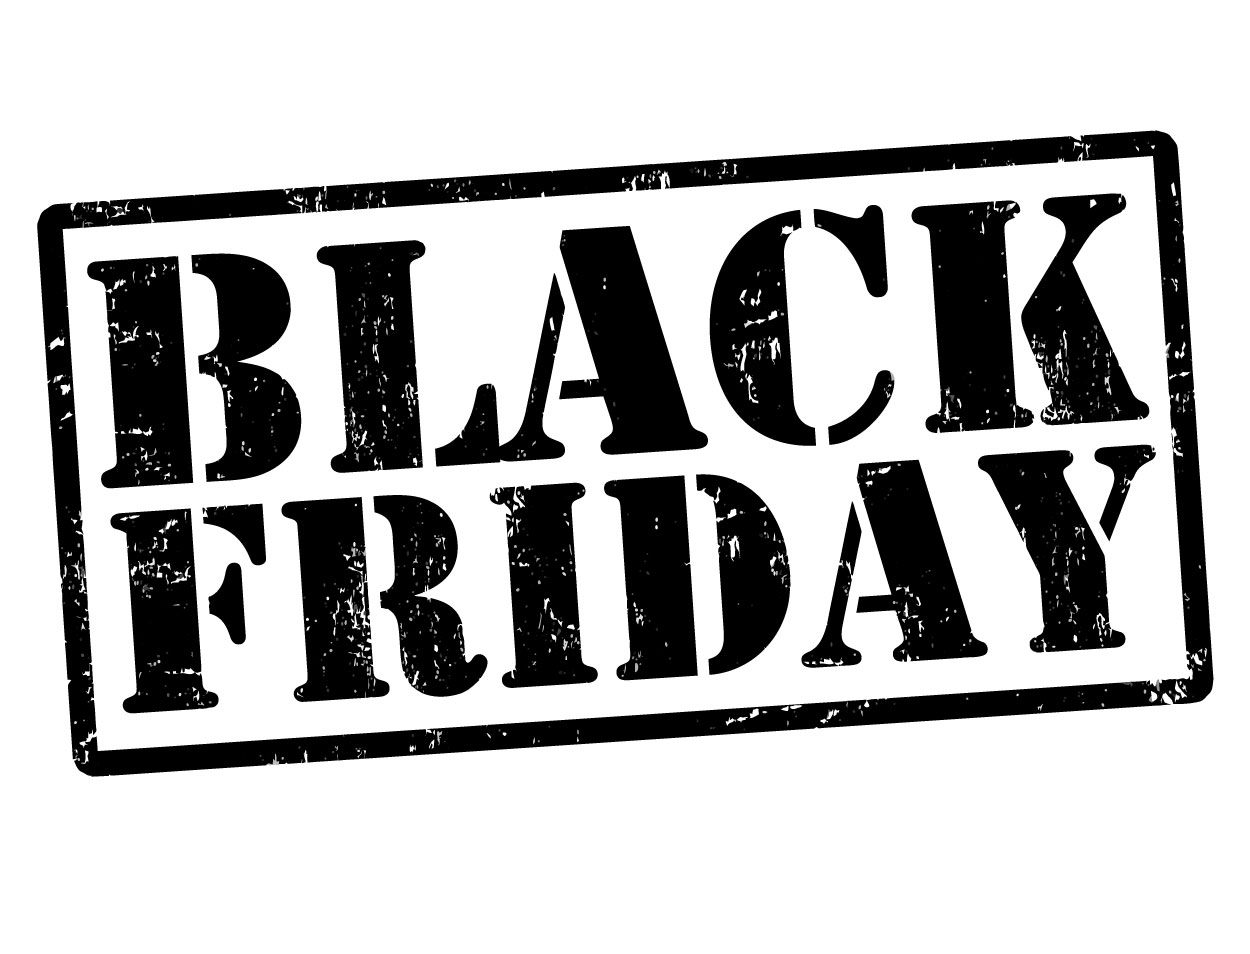 Black Fridax Amazon Black Friday Deals For Gaming Revealed